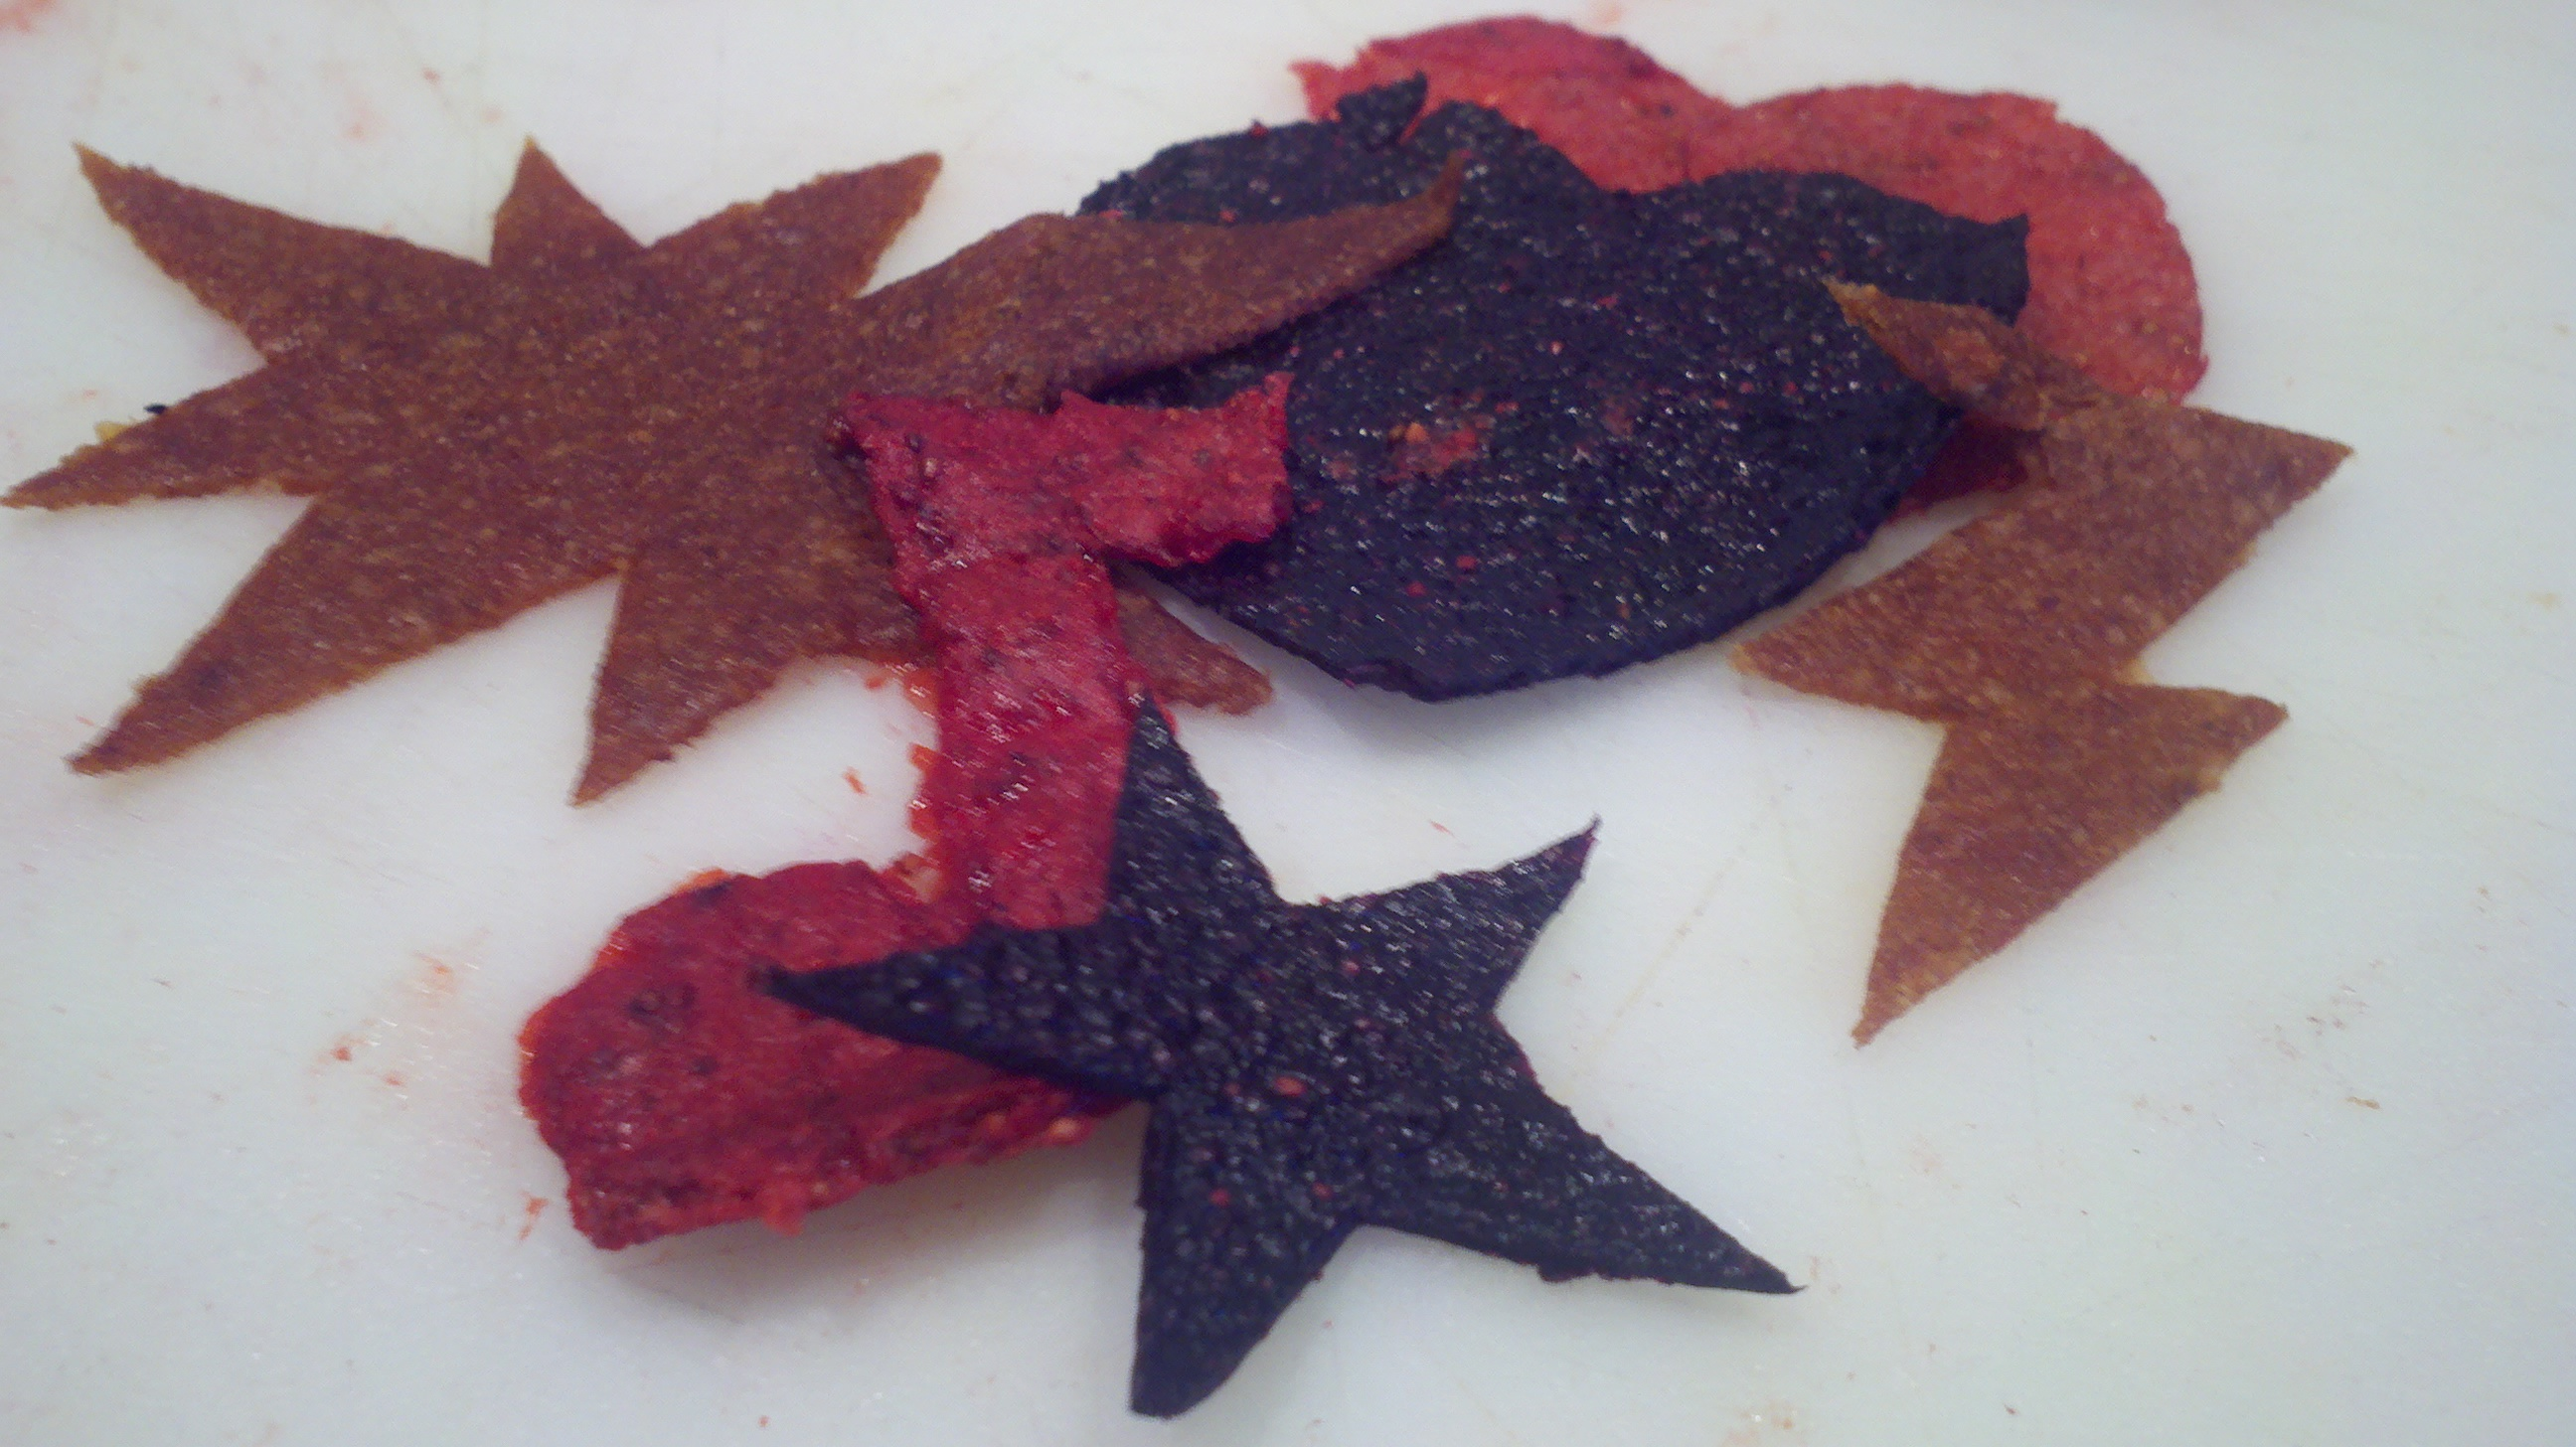 wee fruit leather strawberry fruit leather homemade fruit leather ...